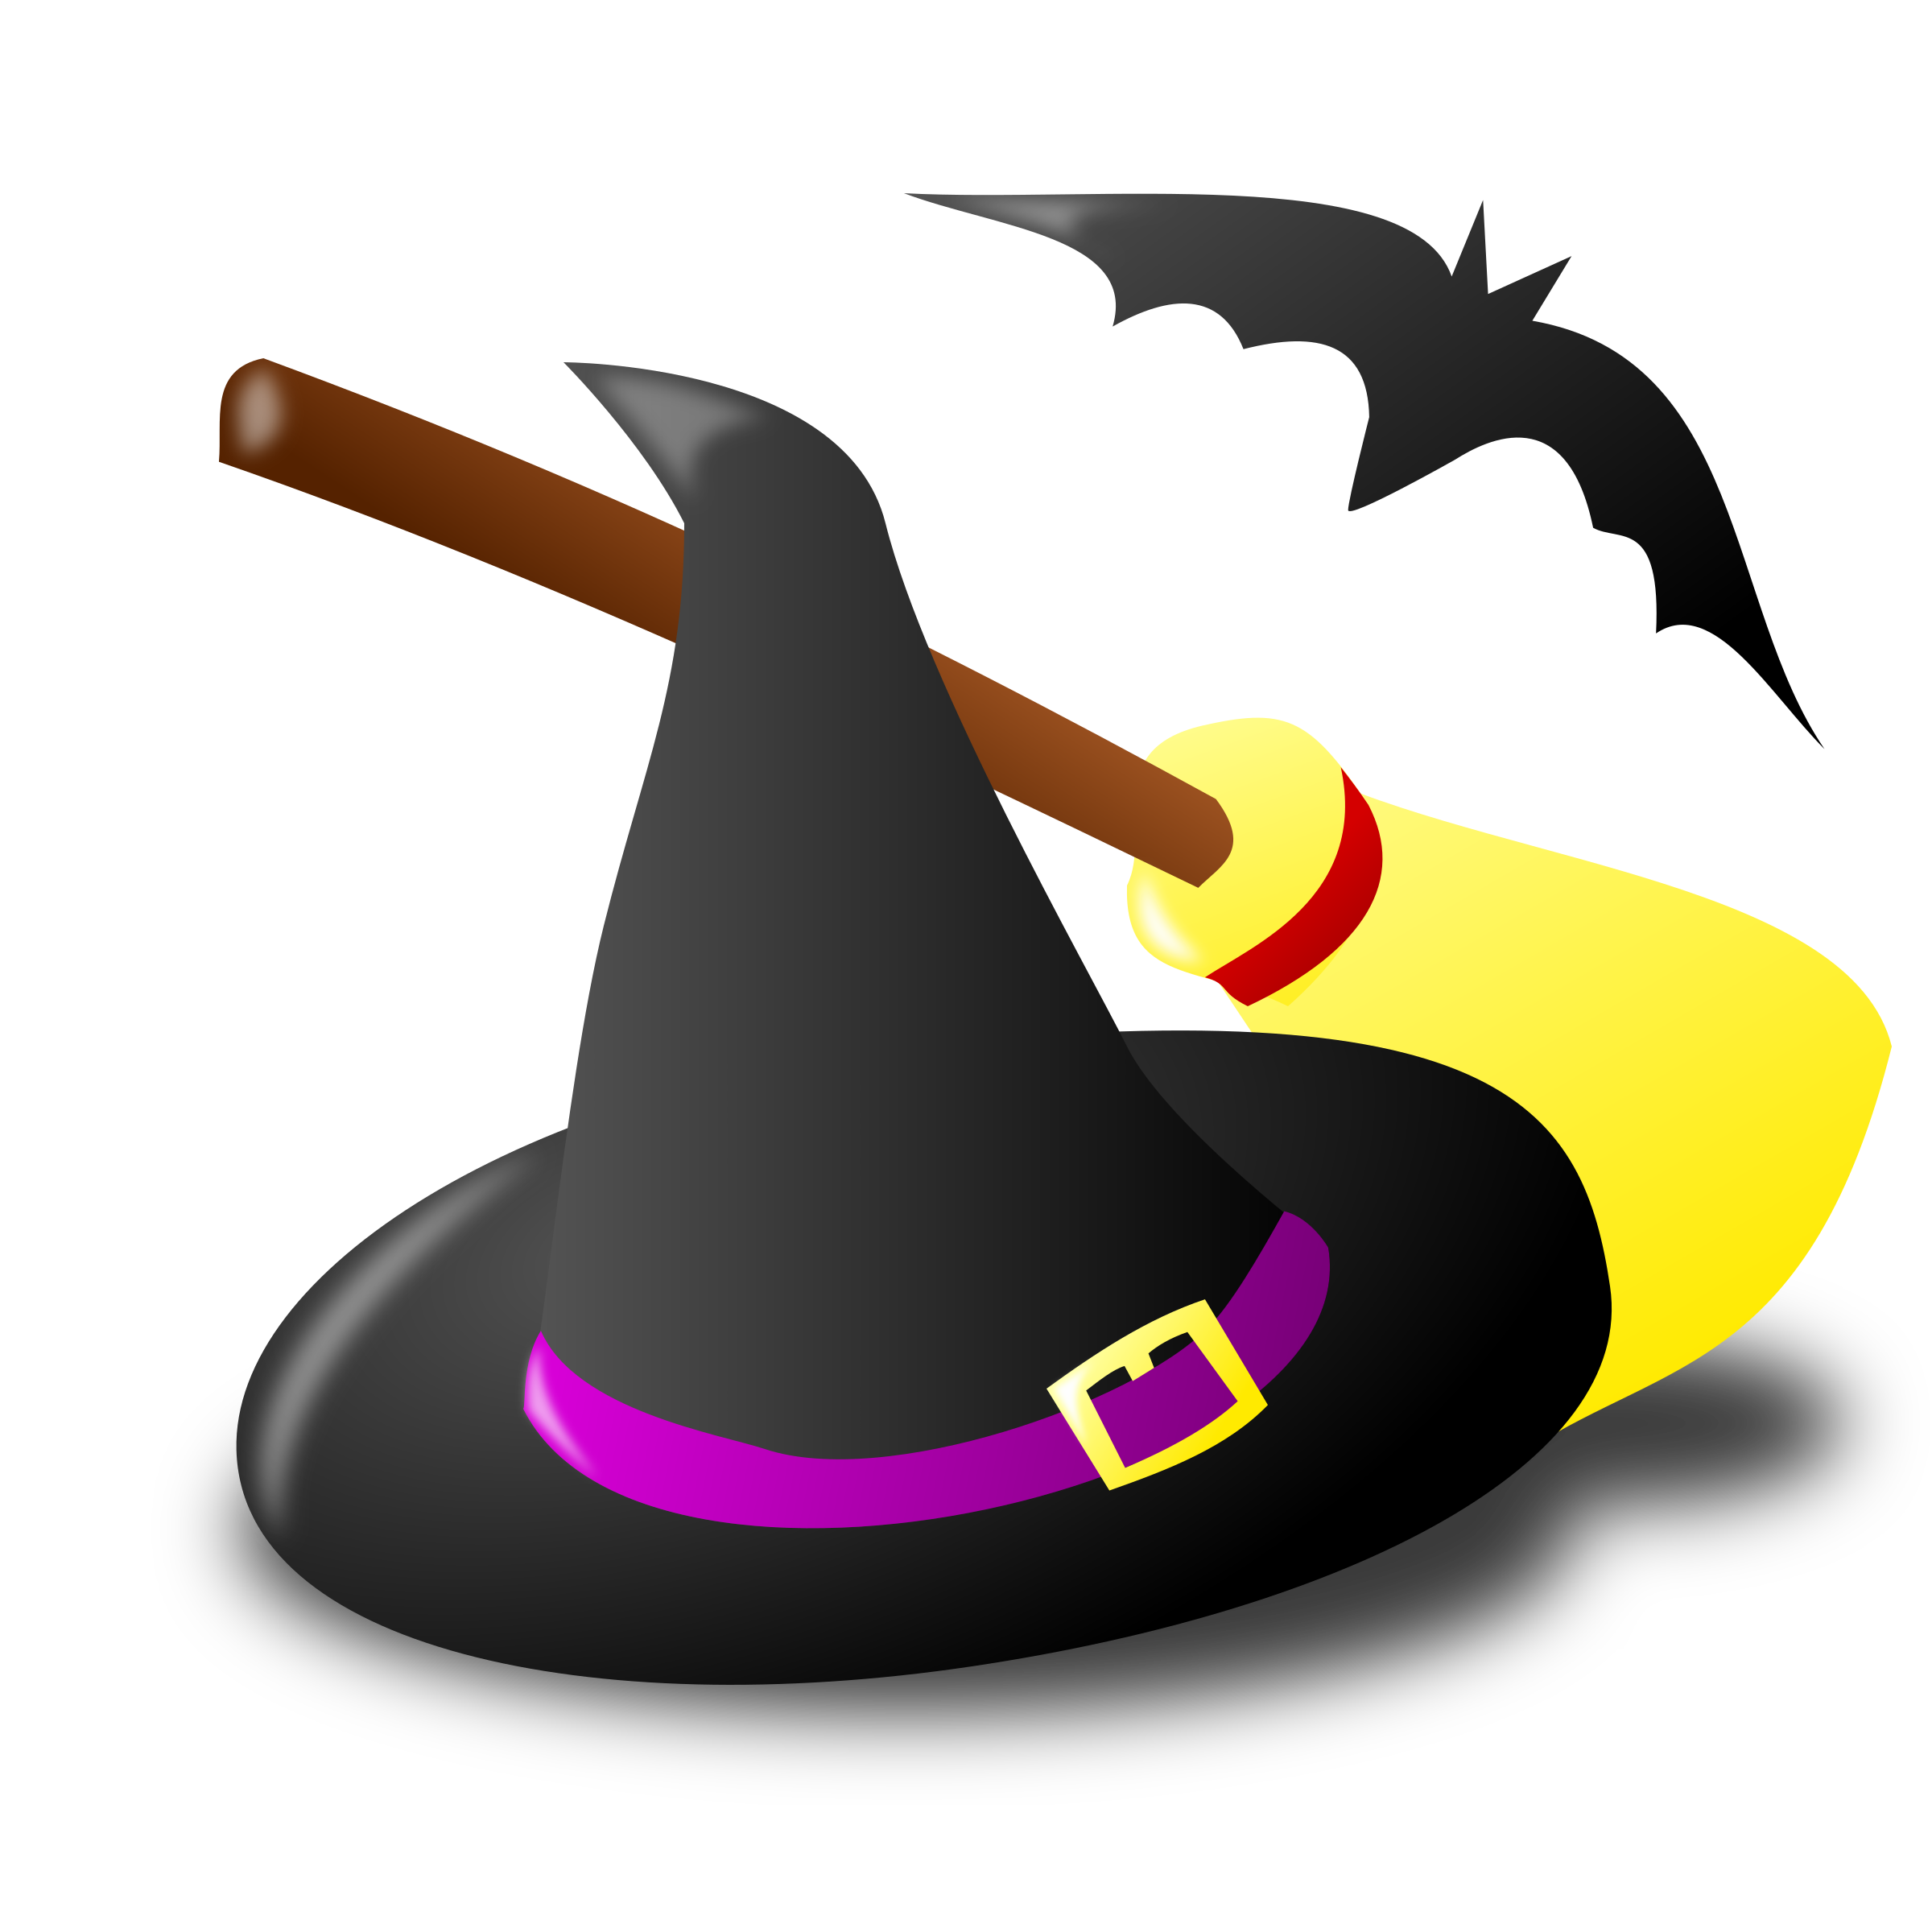 Kids clipart halloween. Icon big image png